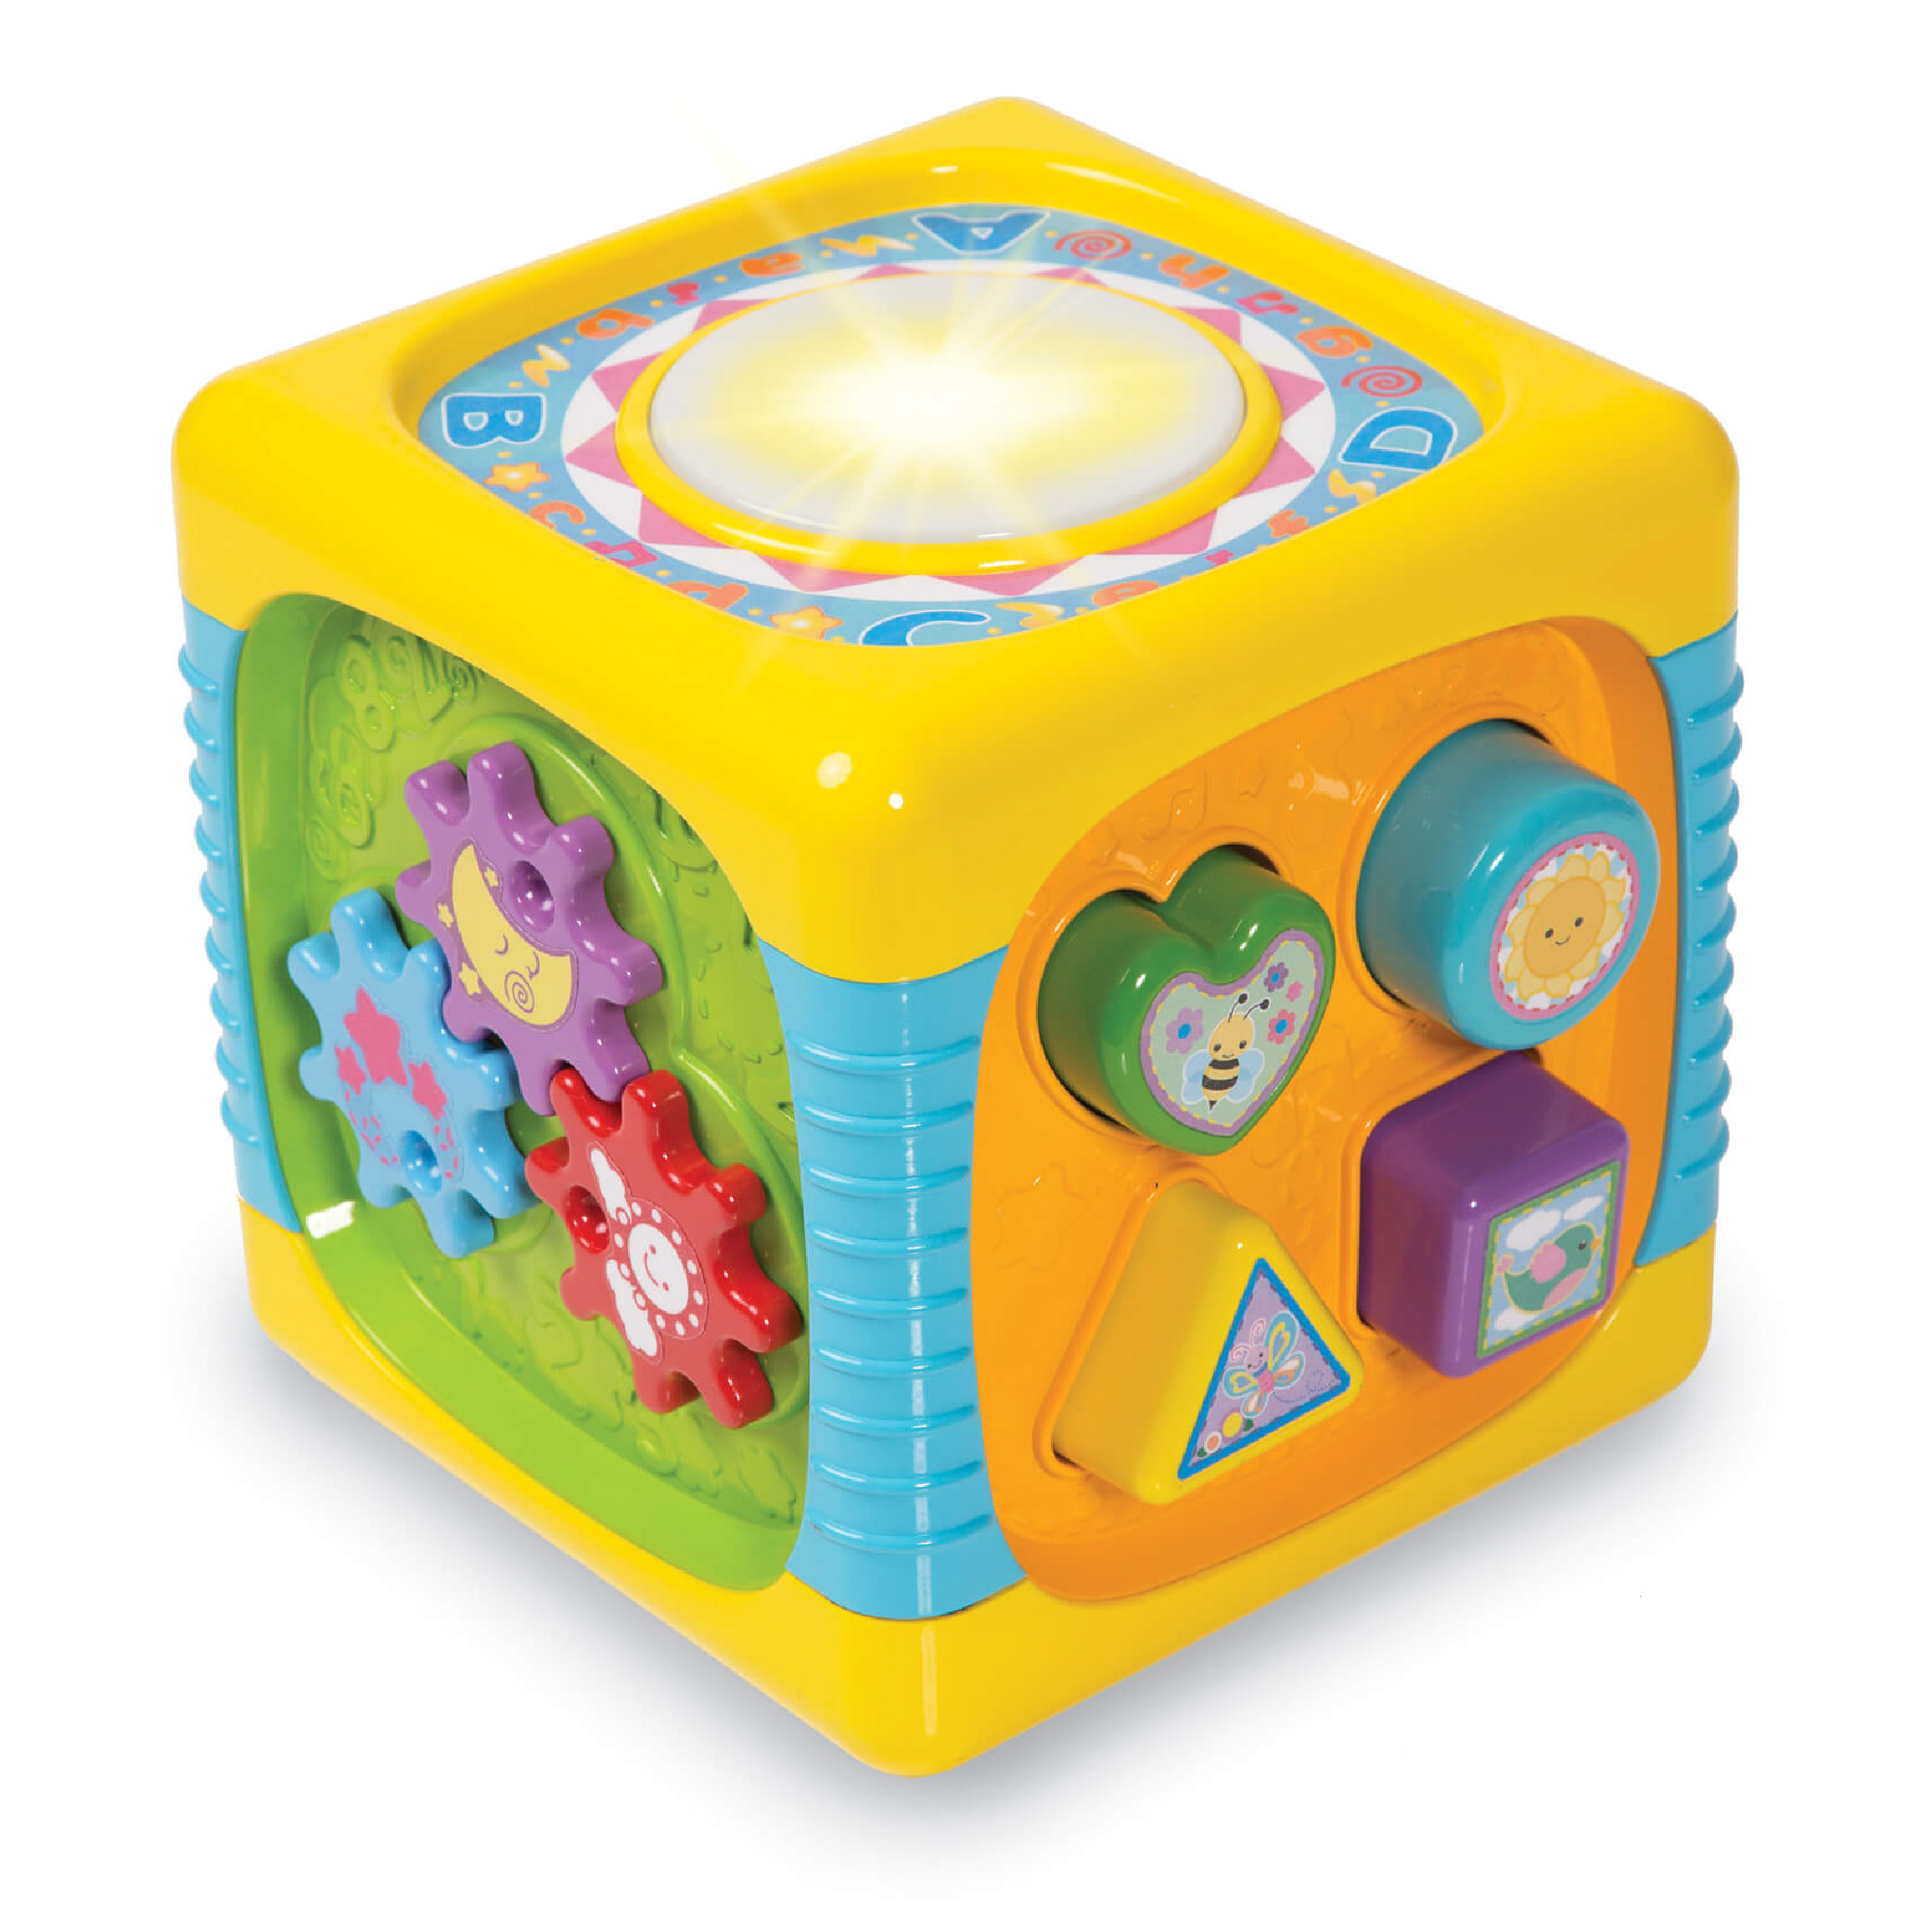 Lot 209-2_Winfun Music Fun Actvity Cube-1